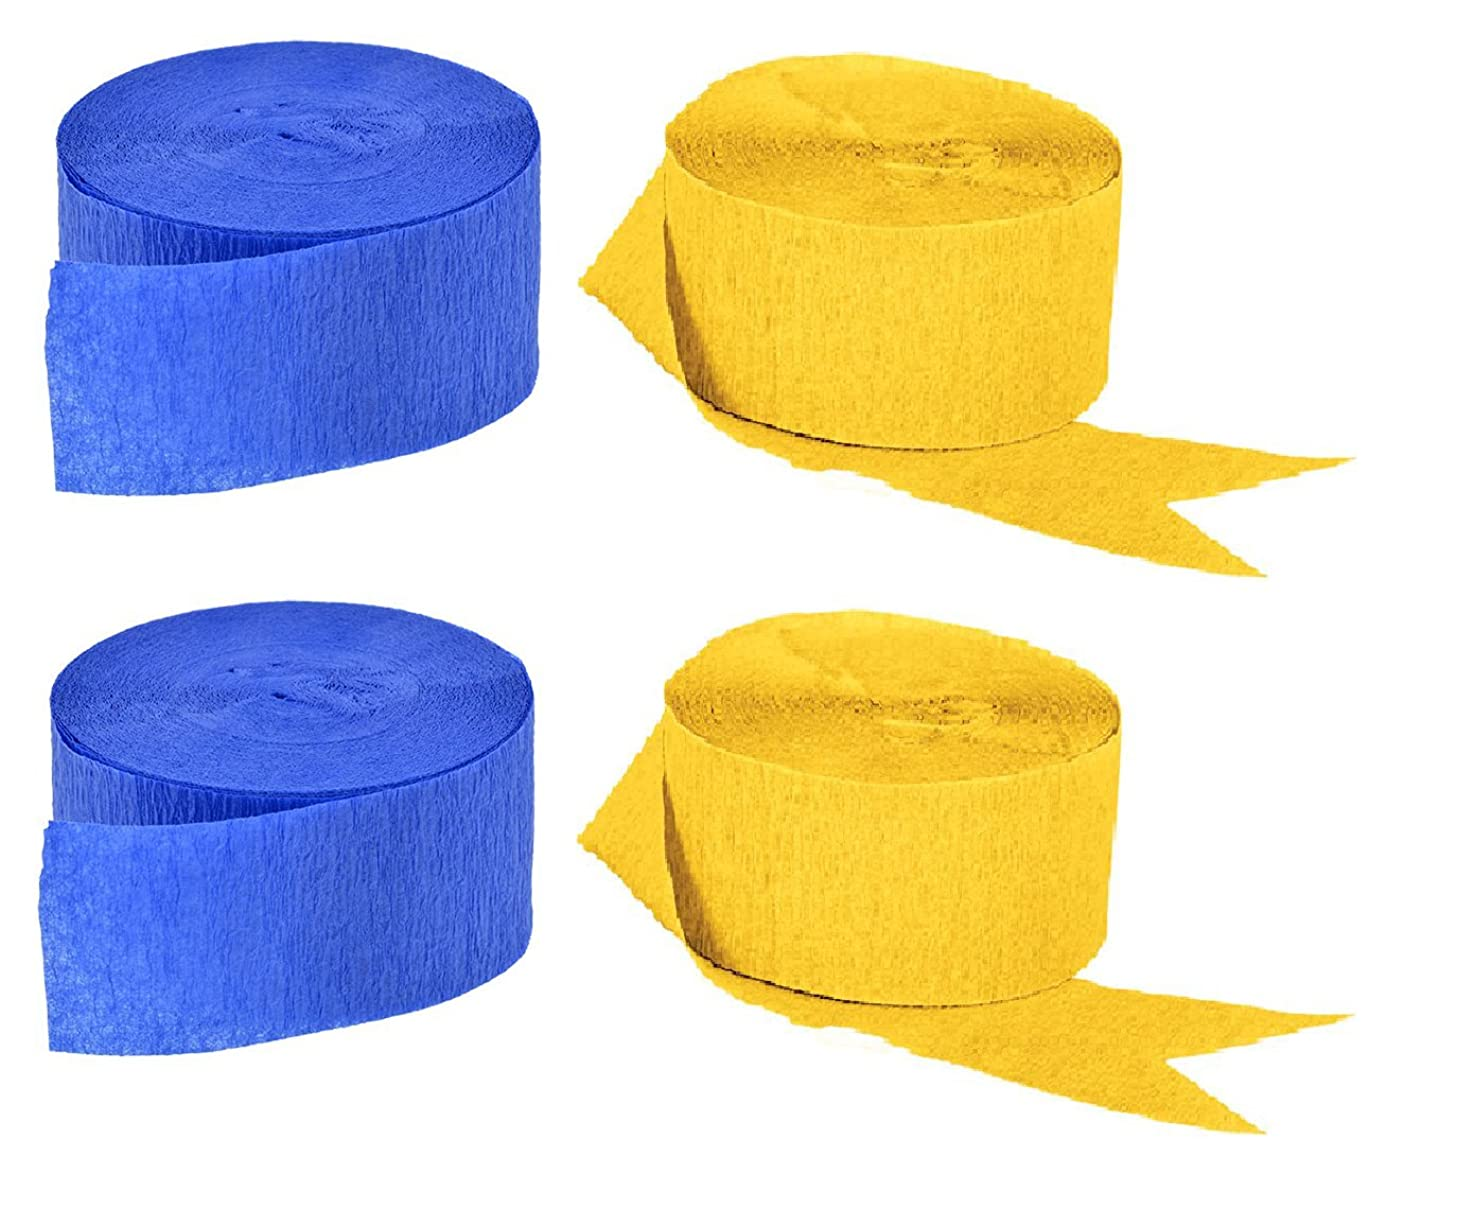 2 Rolls Blue + 2 Rolls Gold Yellow Crepe Paper Set